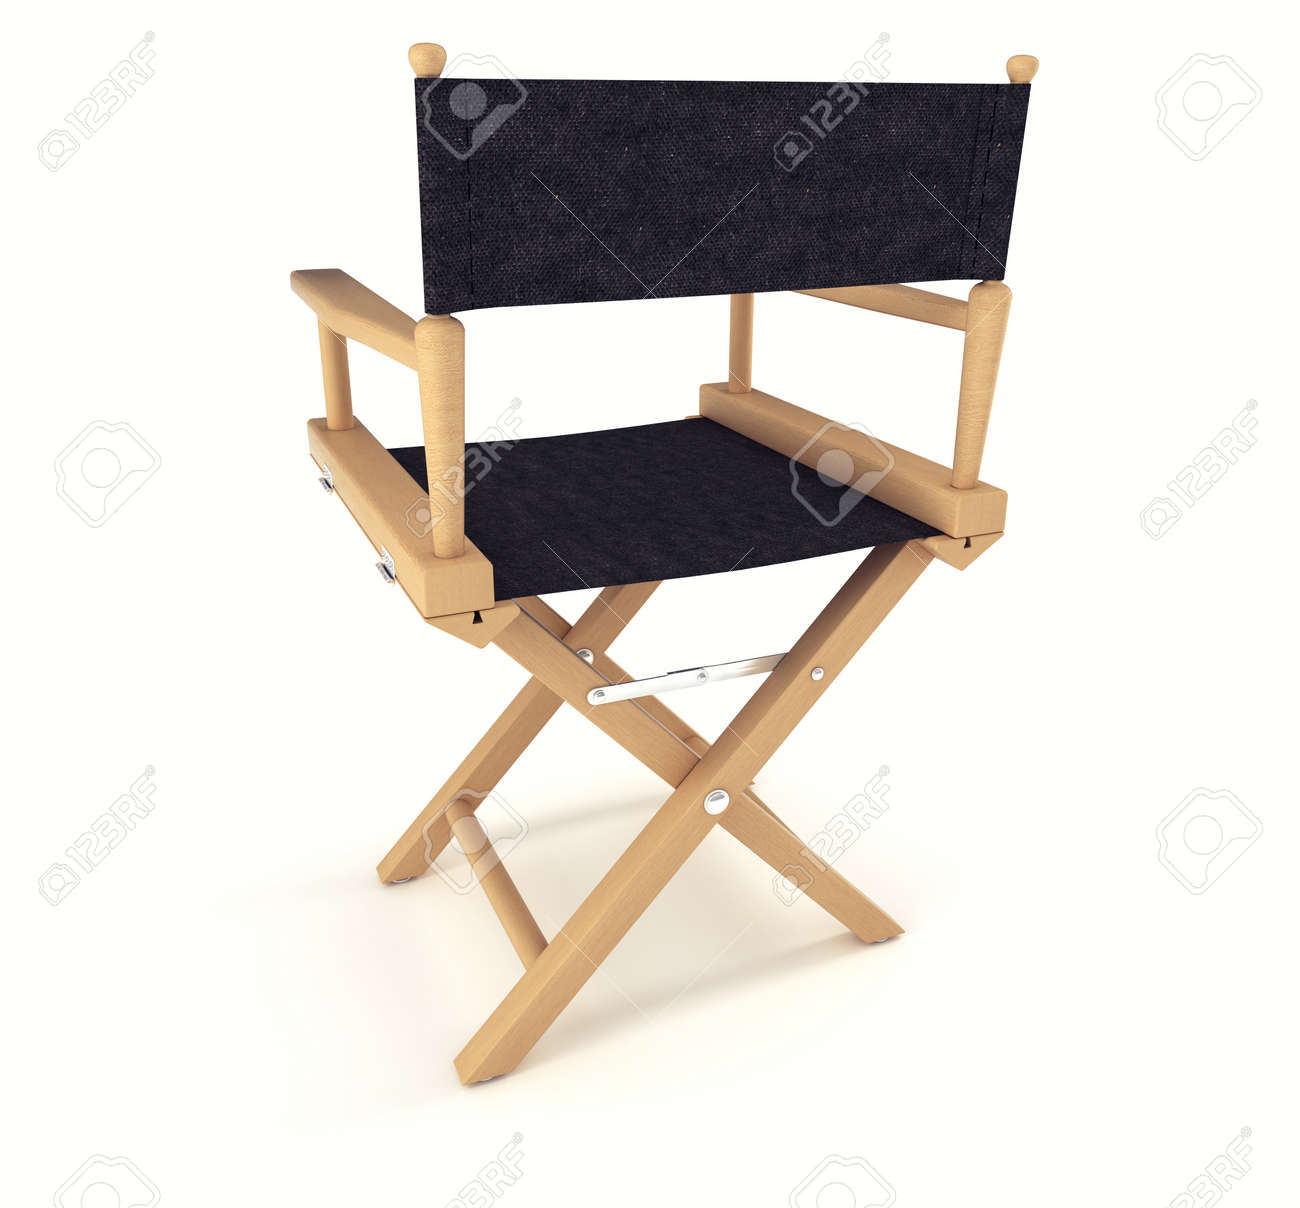 Flim industry: back view of directors chair over white background Stock Photo - 9822984